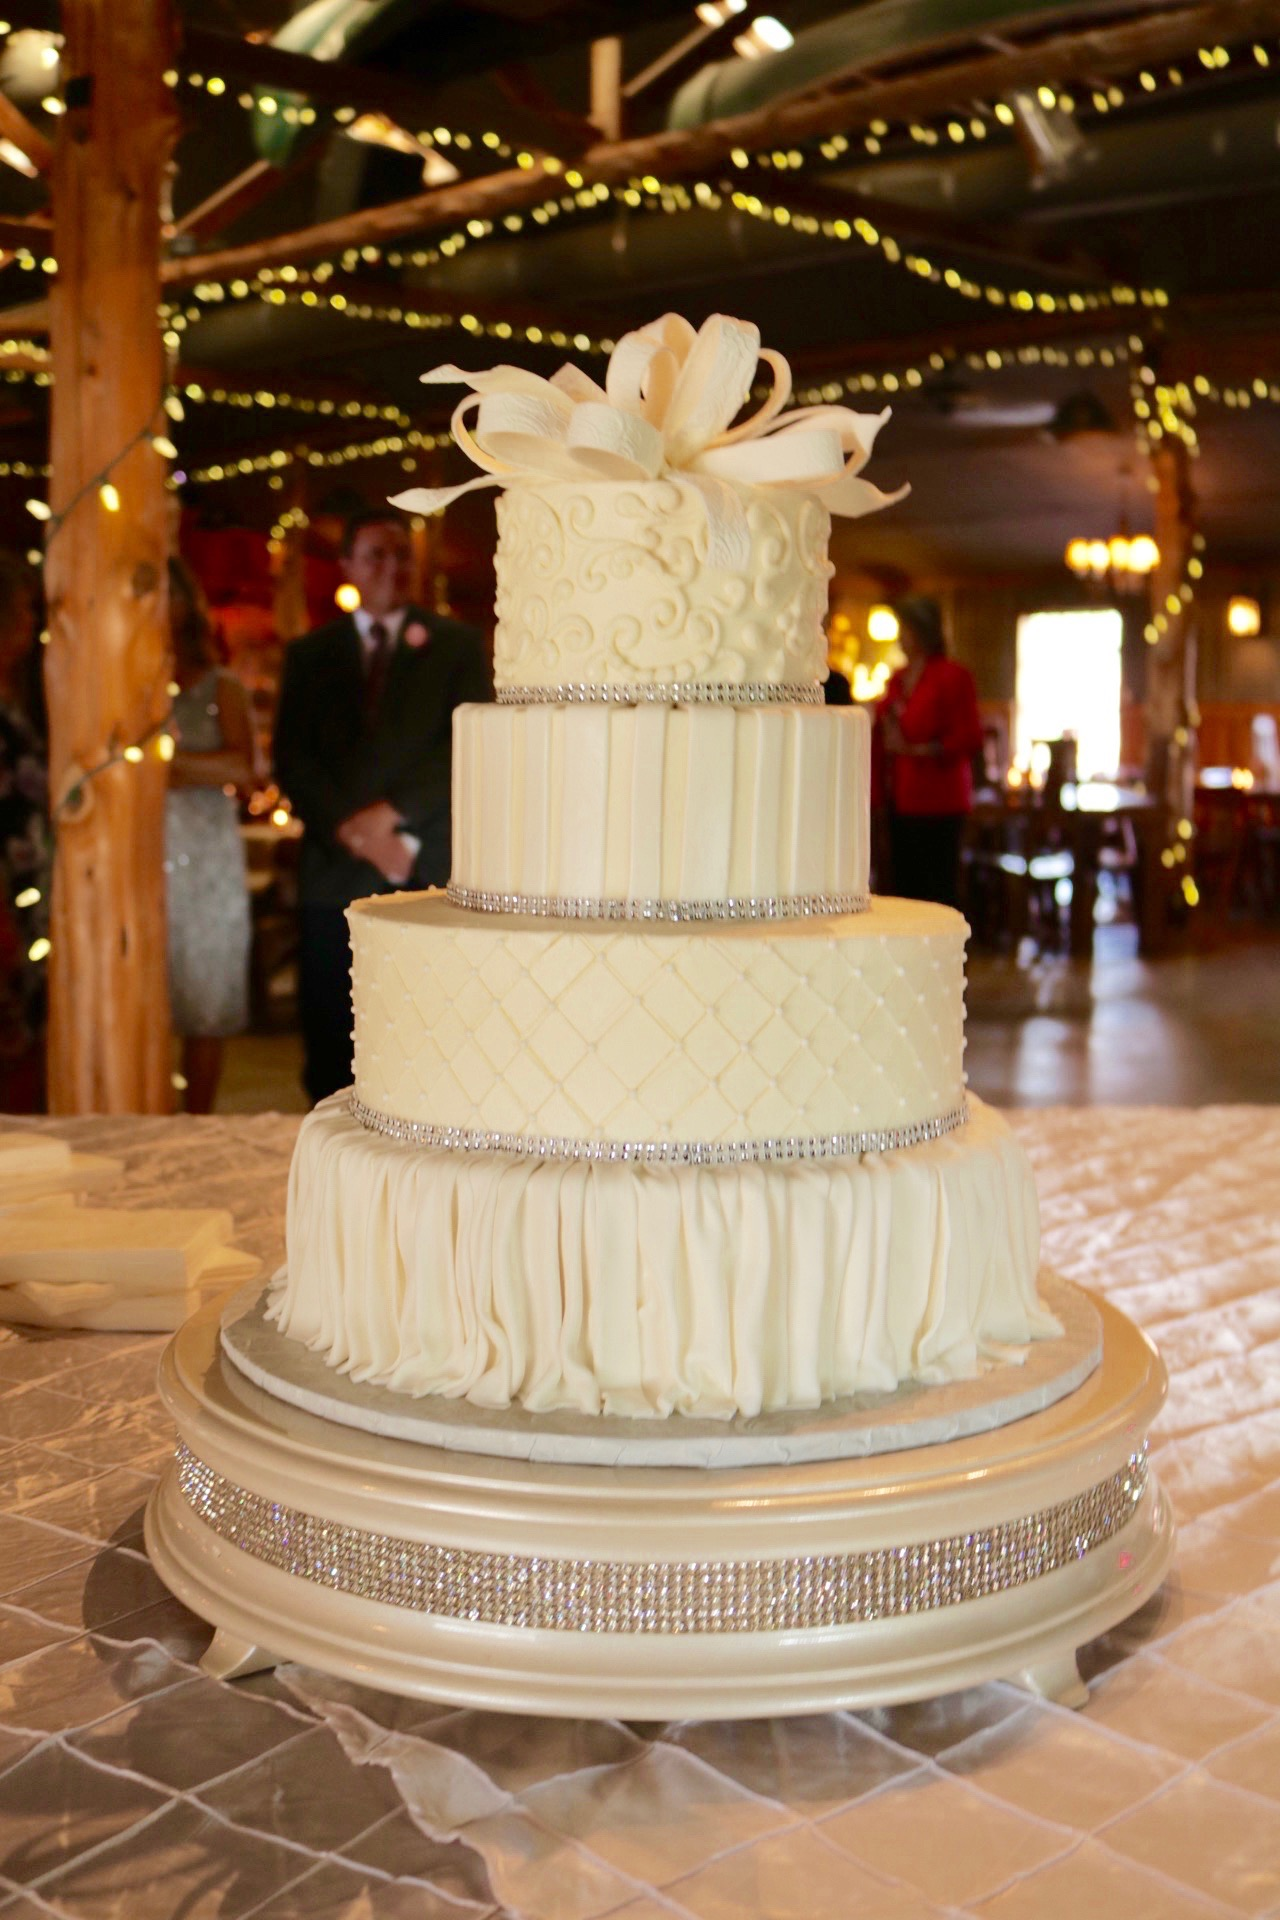 Buttercream and Fondant Wedding Cake